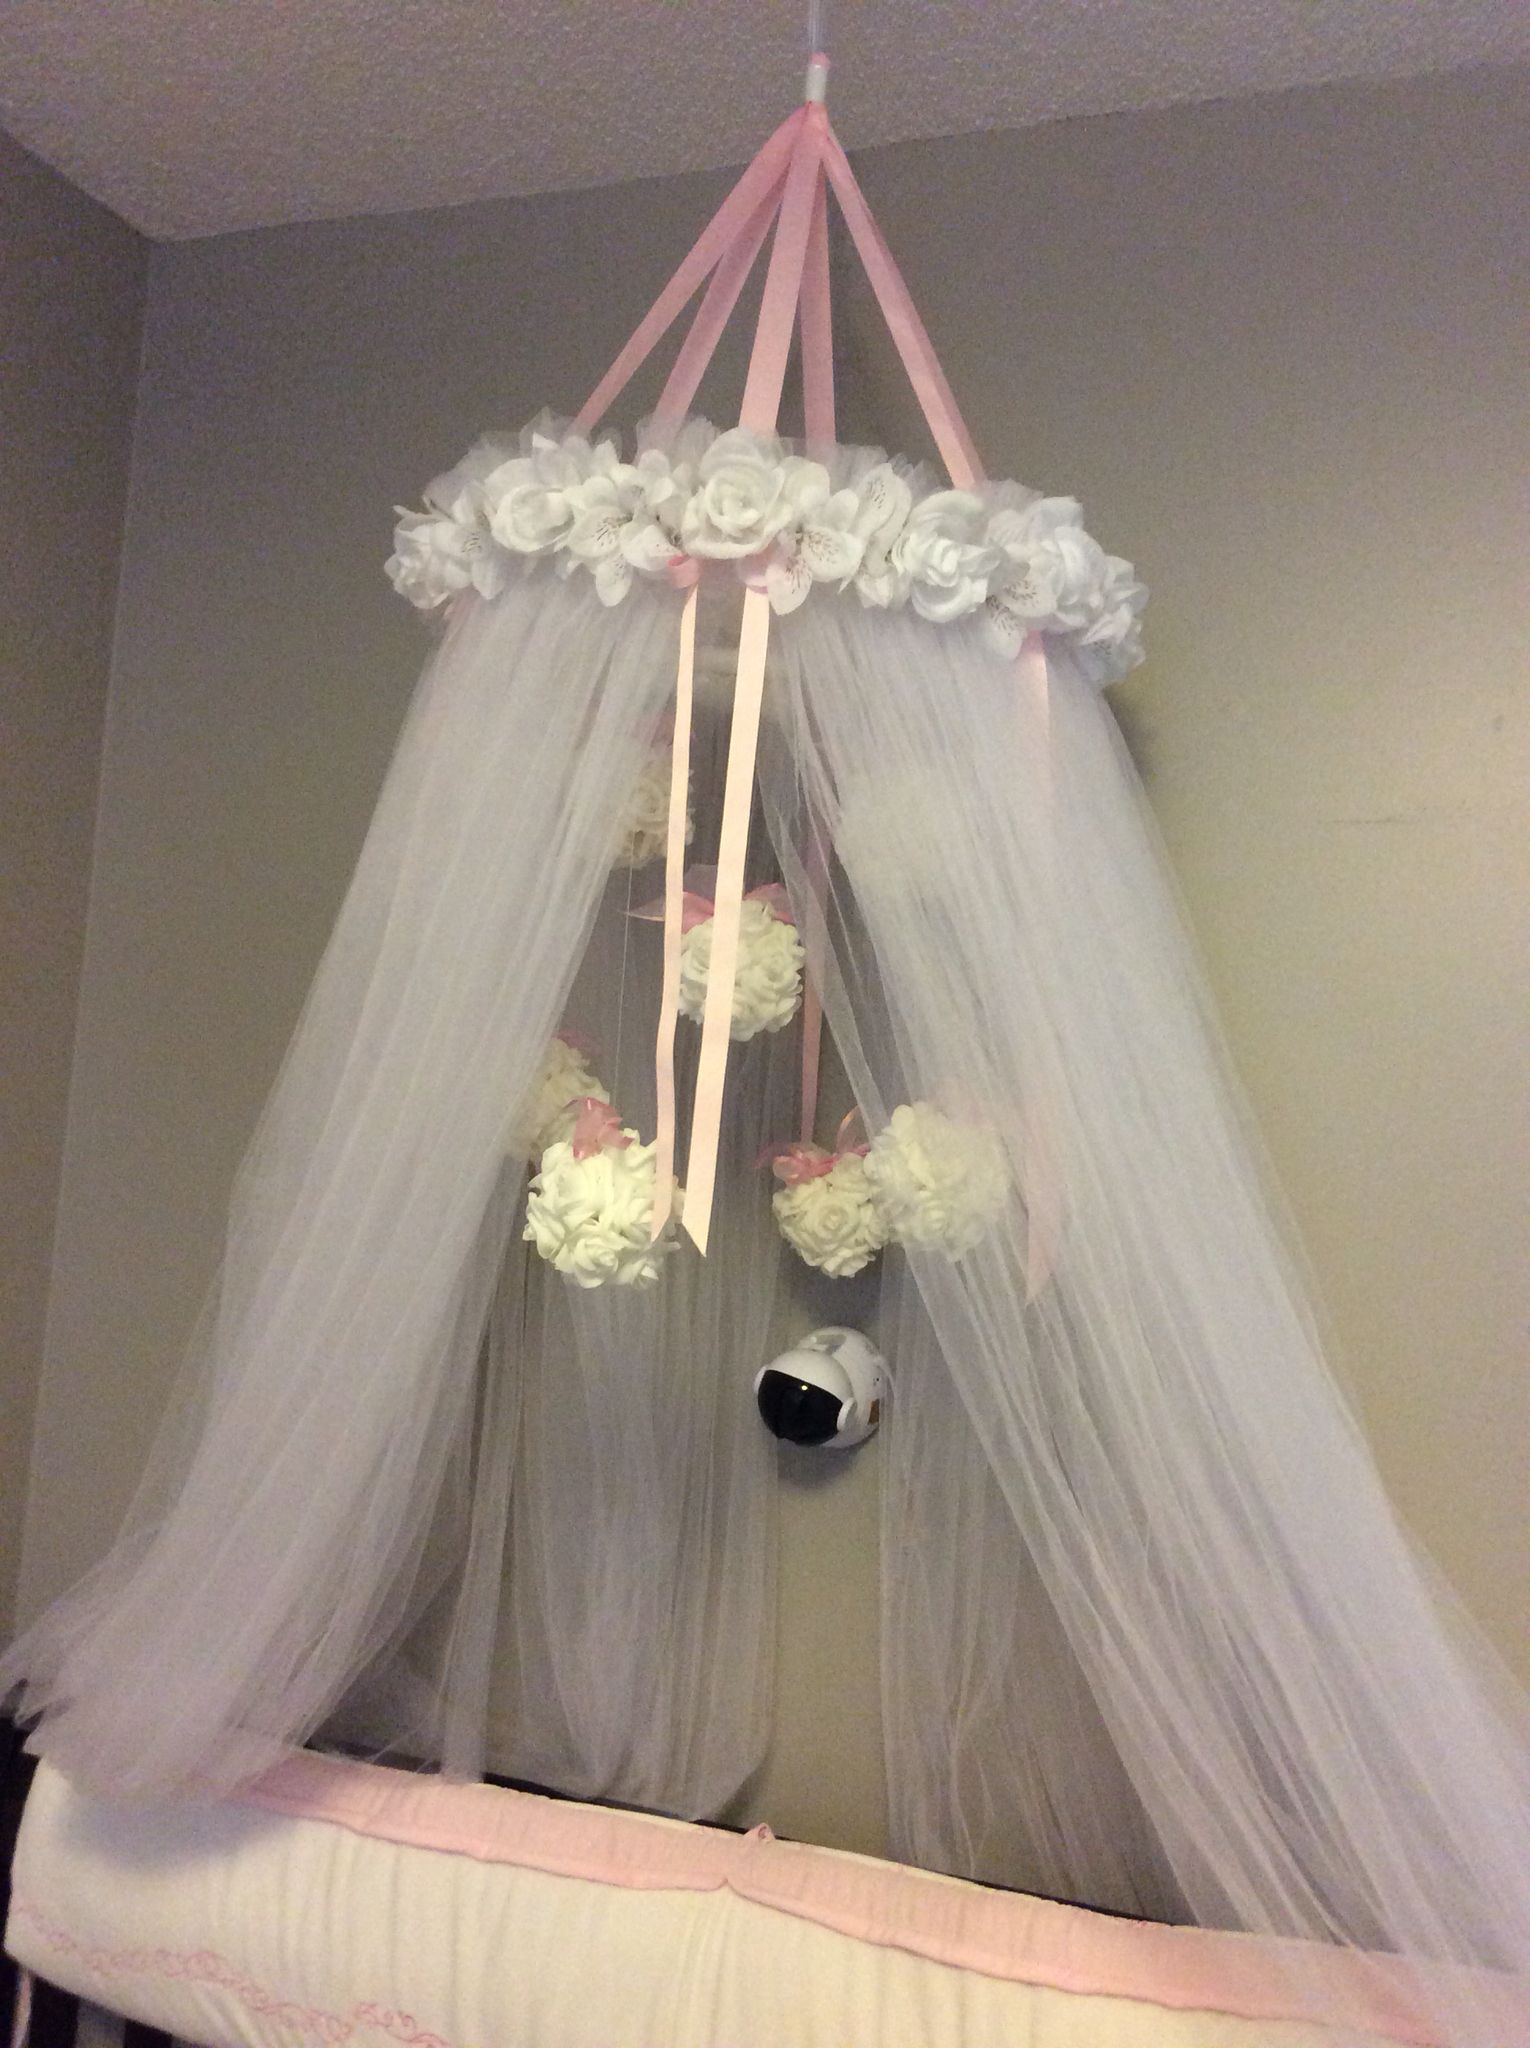 #DIY #baby #princess #canopy over #crib! #girl & DIY #baby #princess #canopy over #crib! #girl | Kadence Micaela ...